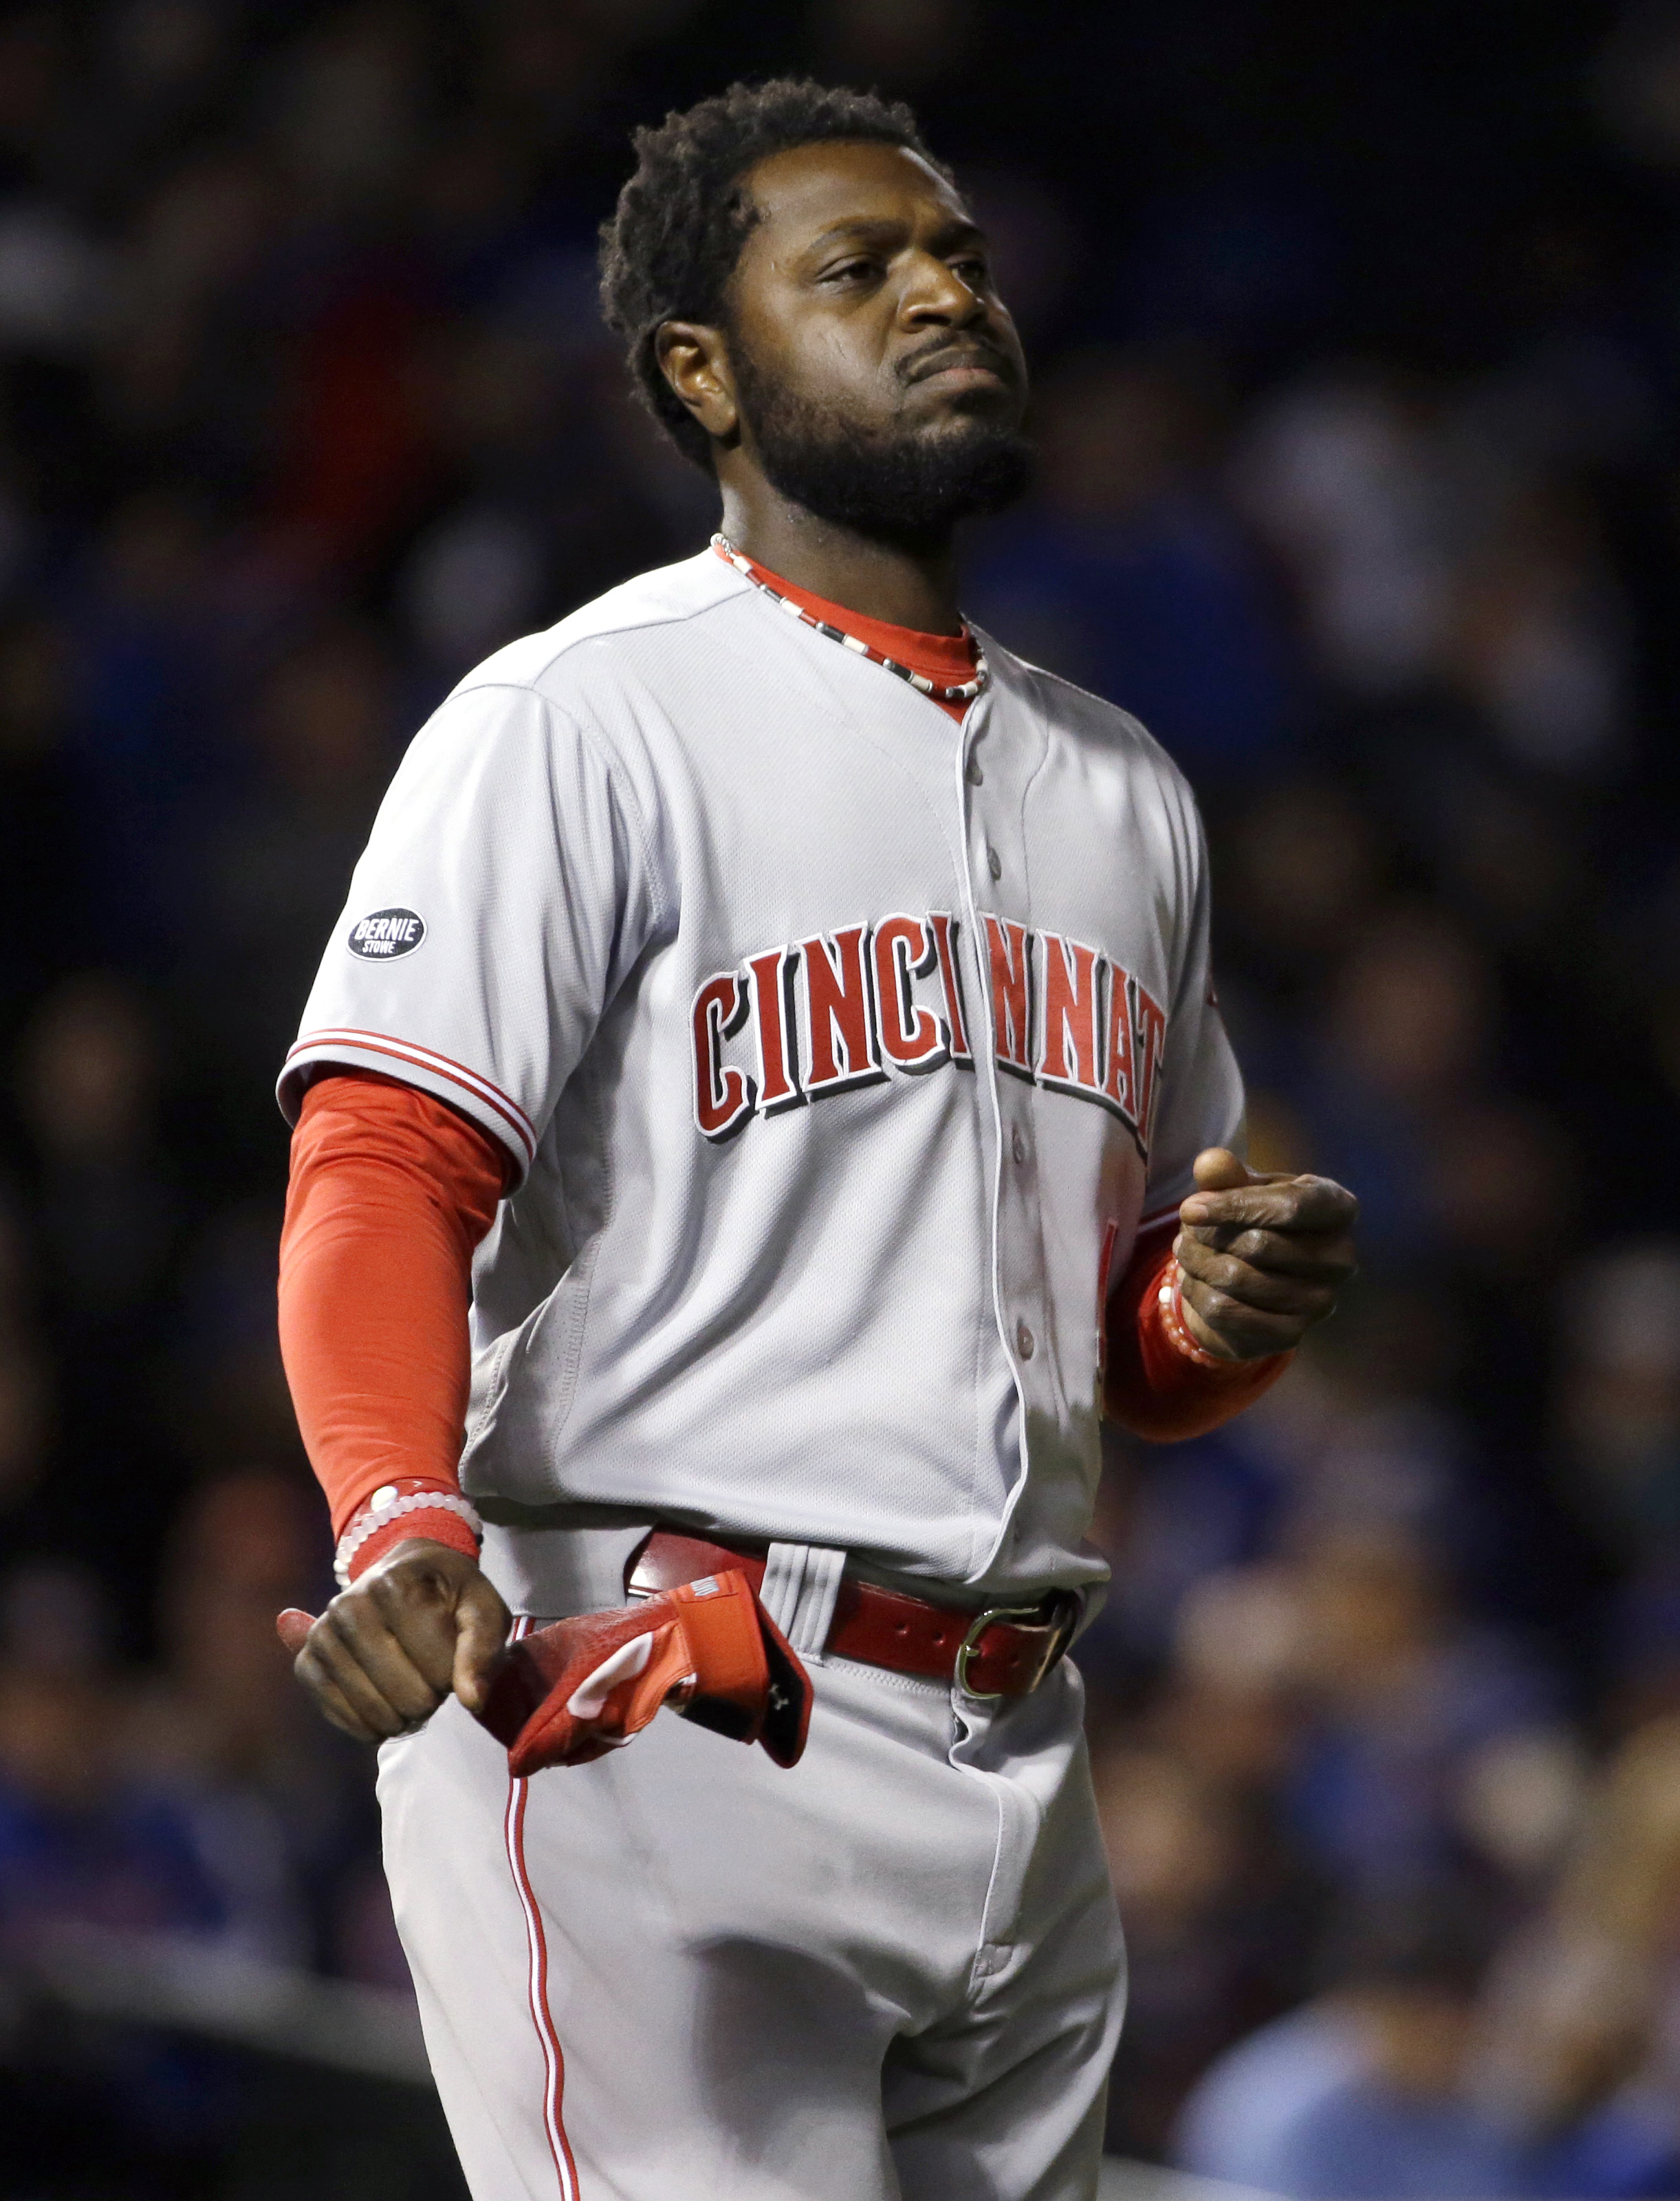 Cincinnati Reds' Brandon Phillips reacts as he walks on the field after striking out swinging during the eighth inning of a baseball game against the Chicago Cubs on Thursday, April 14, 2016, in Chicago. (AP Photo/Nam Y. Huh)